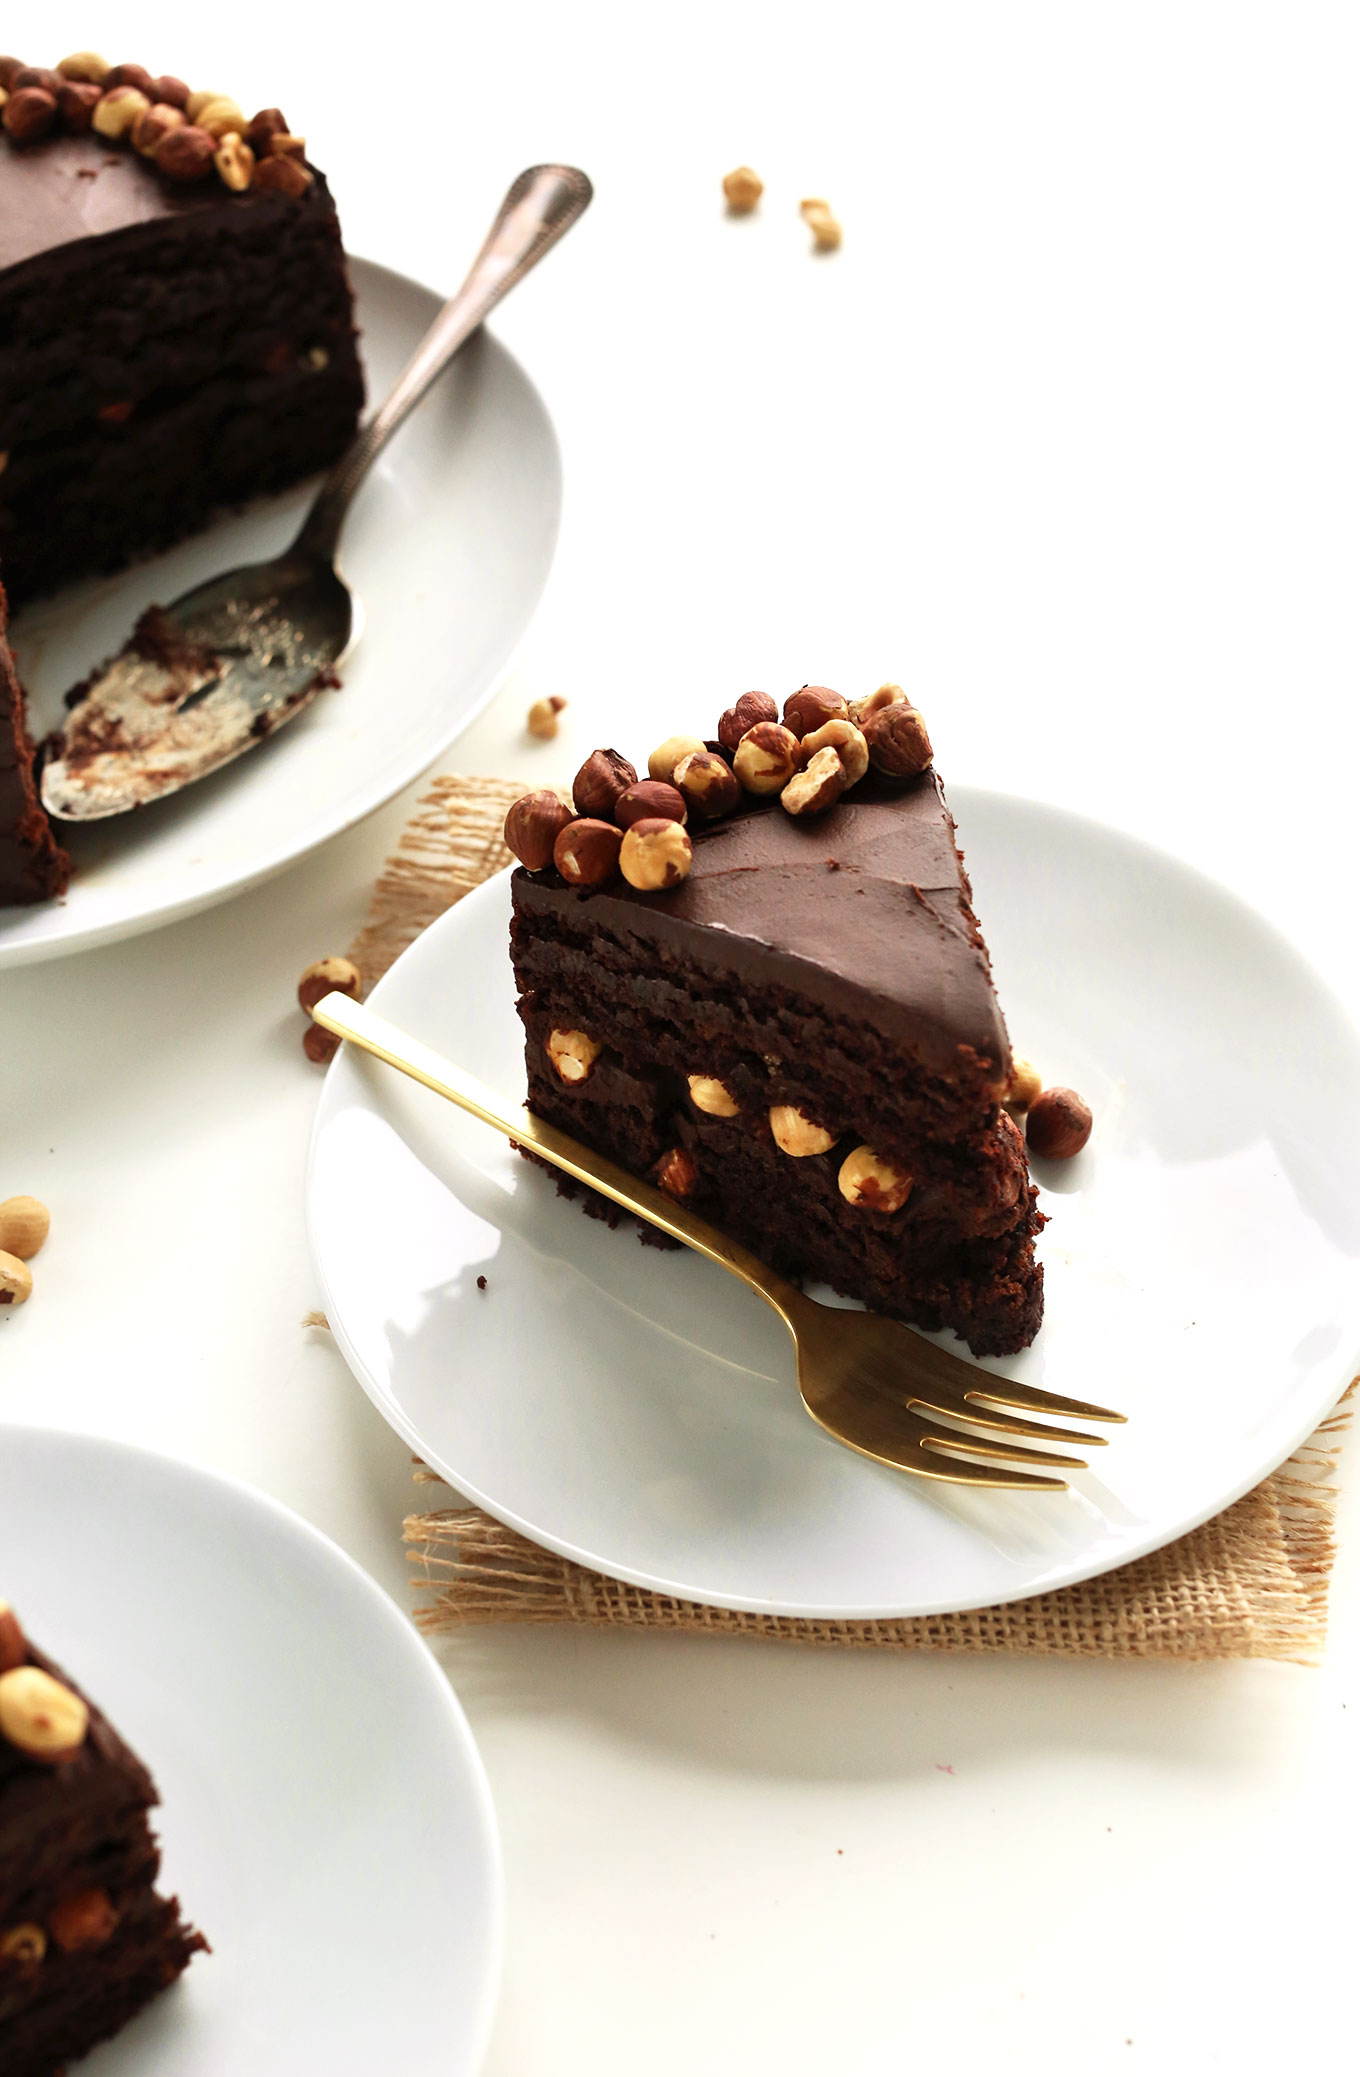 Plates of sliced Vegan Gluten-Free Chocolate Hazelnut Cake